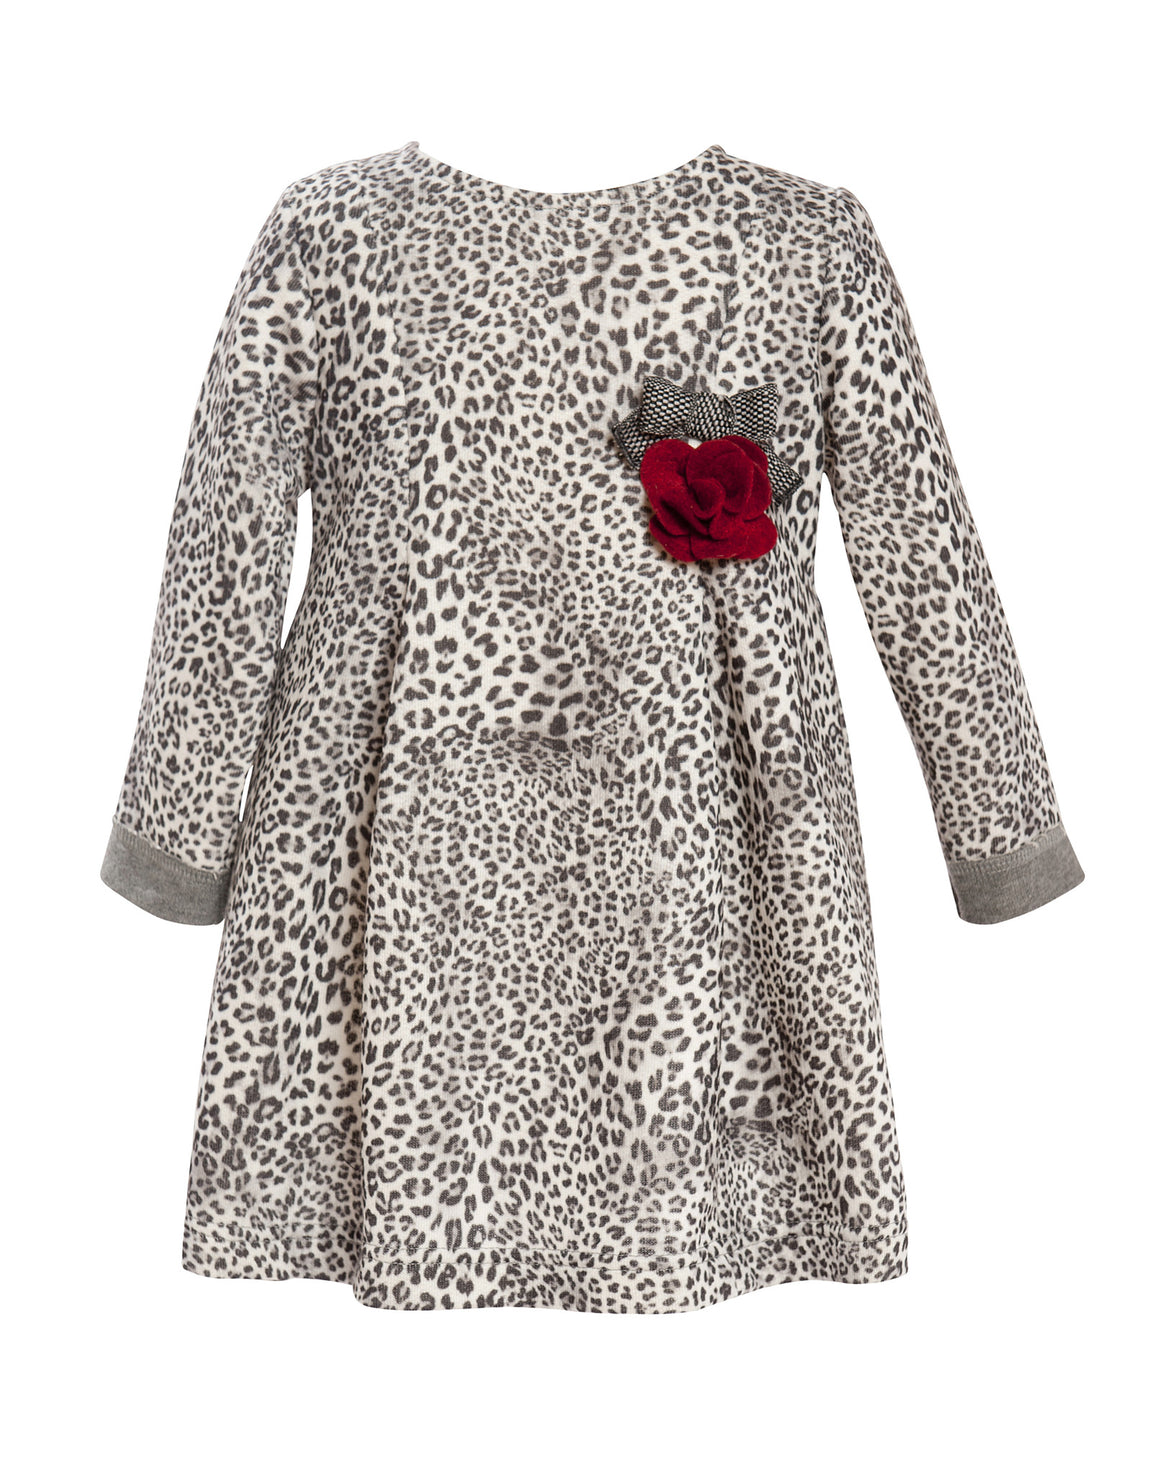 Balloon Chic - Girls Leopard Print Dress | Dresses & Skirts | Bon Bon Tresor